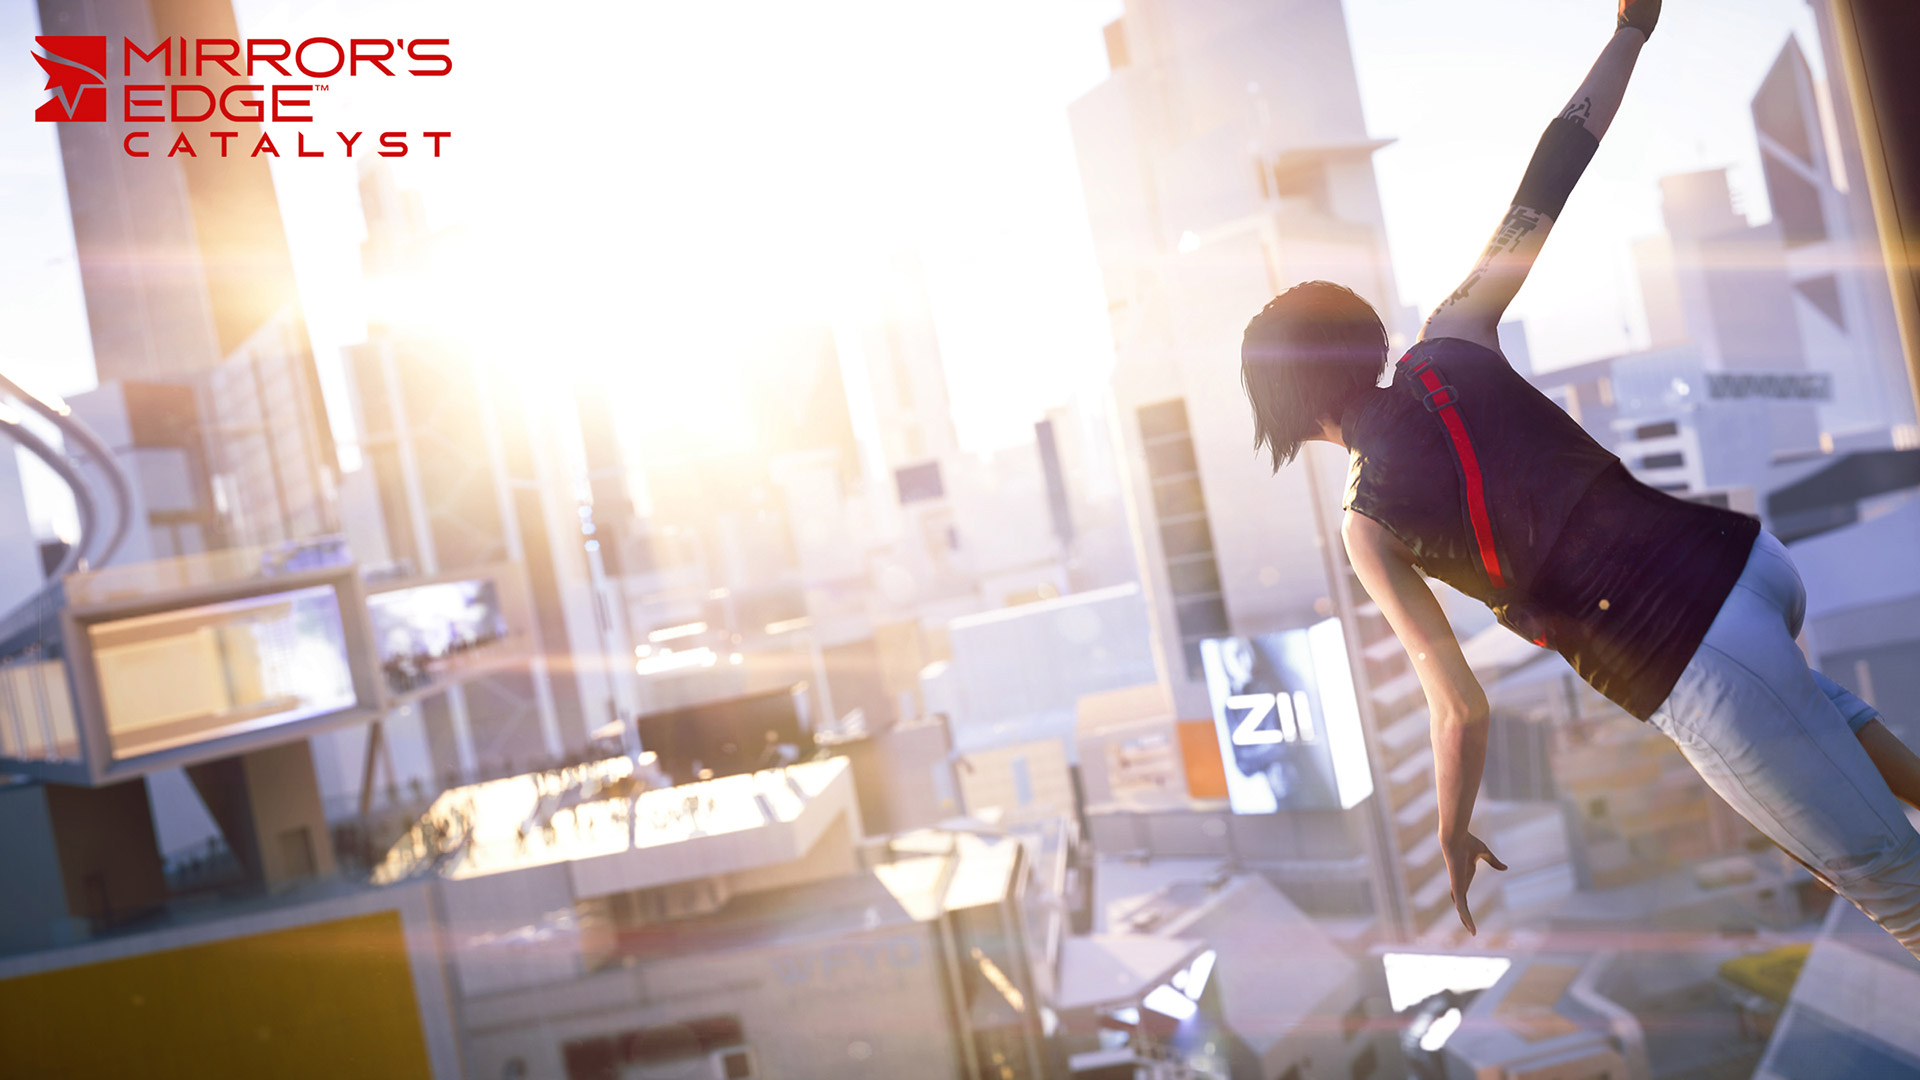 Mirror's Edge Catalyst: It's like this, but with running around.